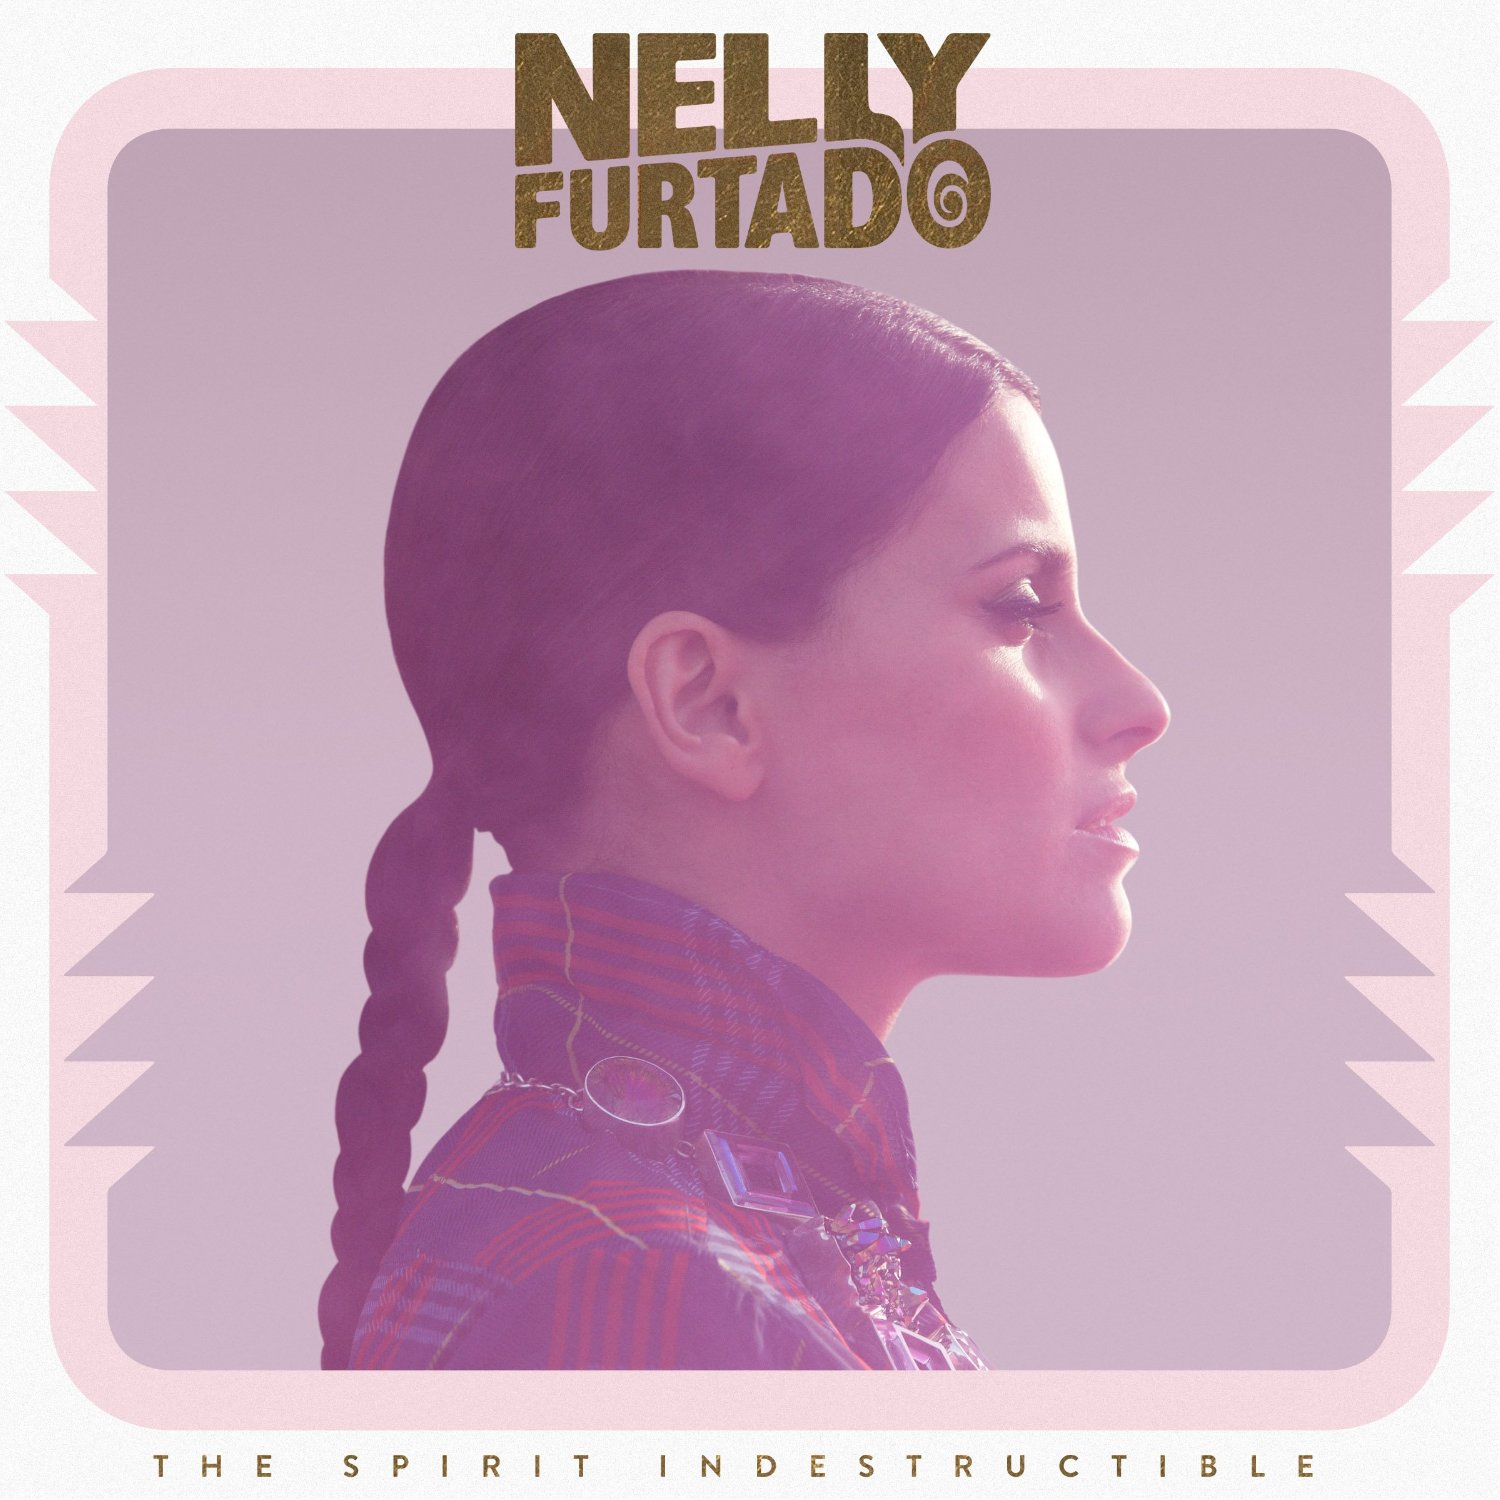 http://4.bp.blogspot.com/-C-5AqlENxXE/T61HRhi_EhI/AAAAAAAADX0/oTPjIyVpYpo/s1600/nelly+furtado+-+the+spirit+indestructible+deluxe.jpg